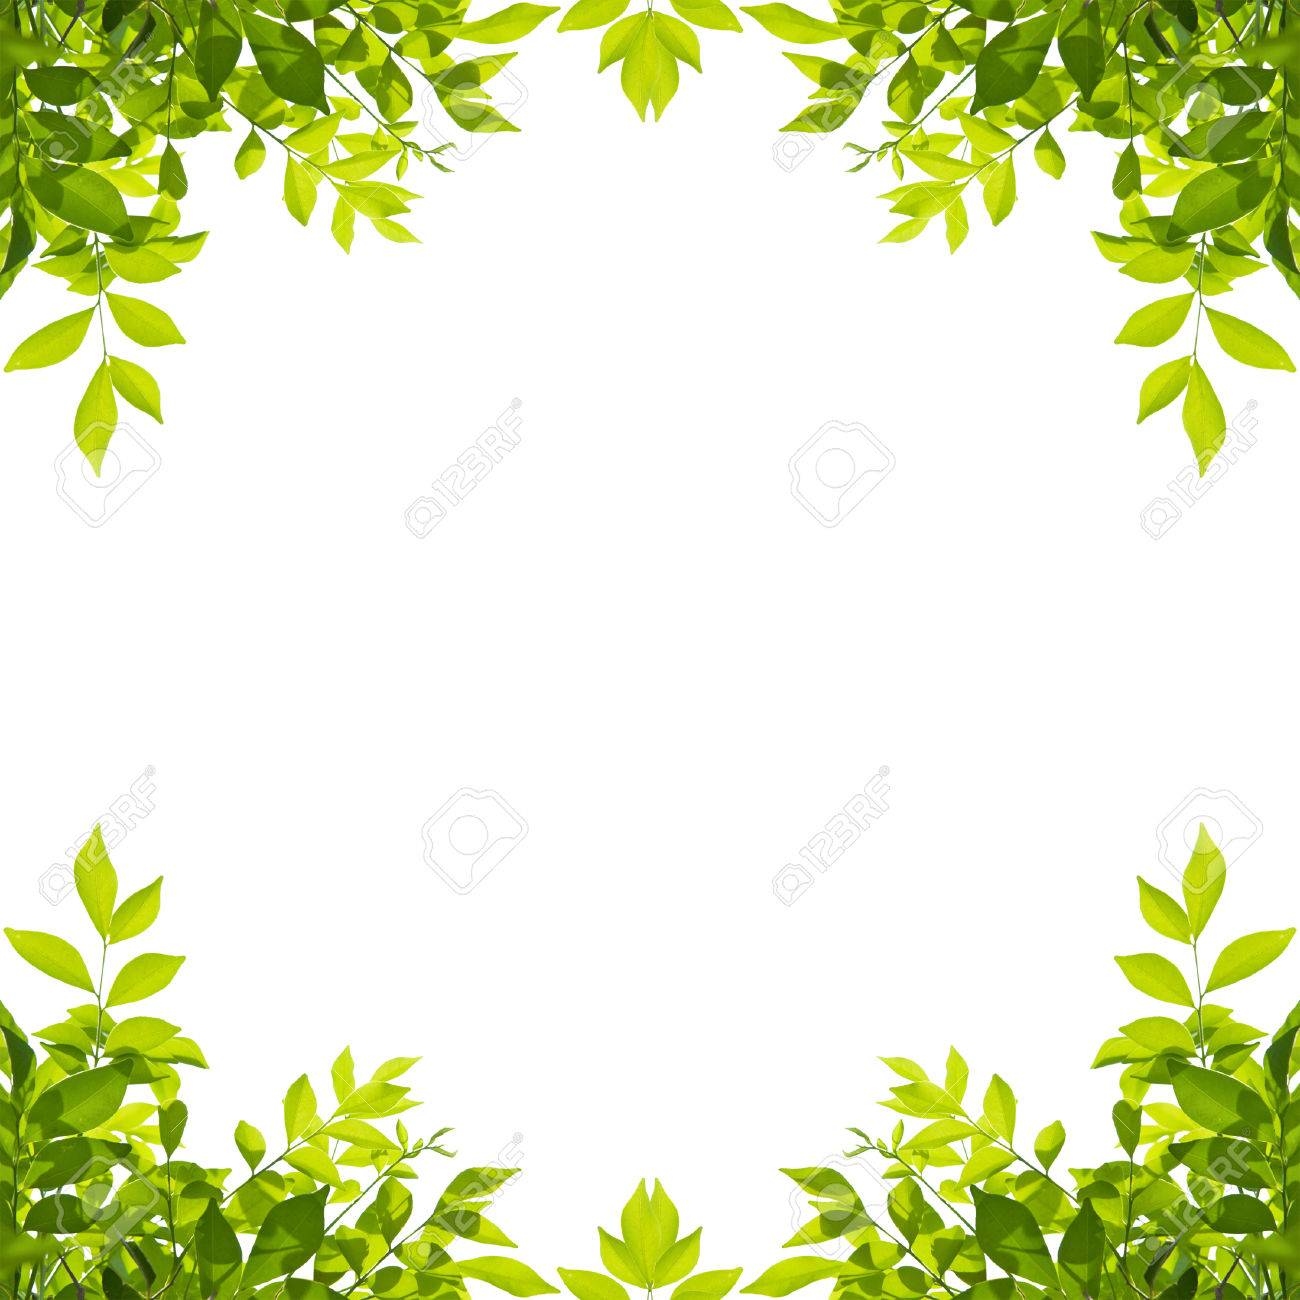 Green leaf border isolated on white background. Clipping paths included. - 72952930